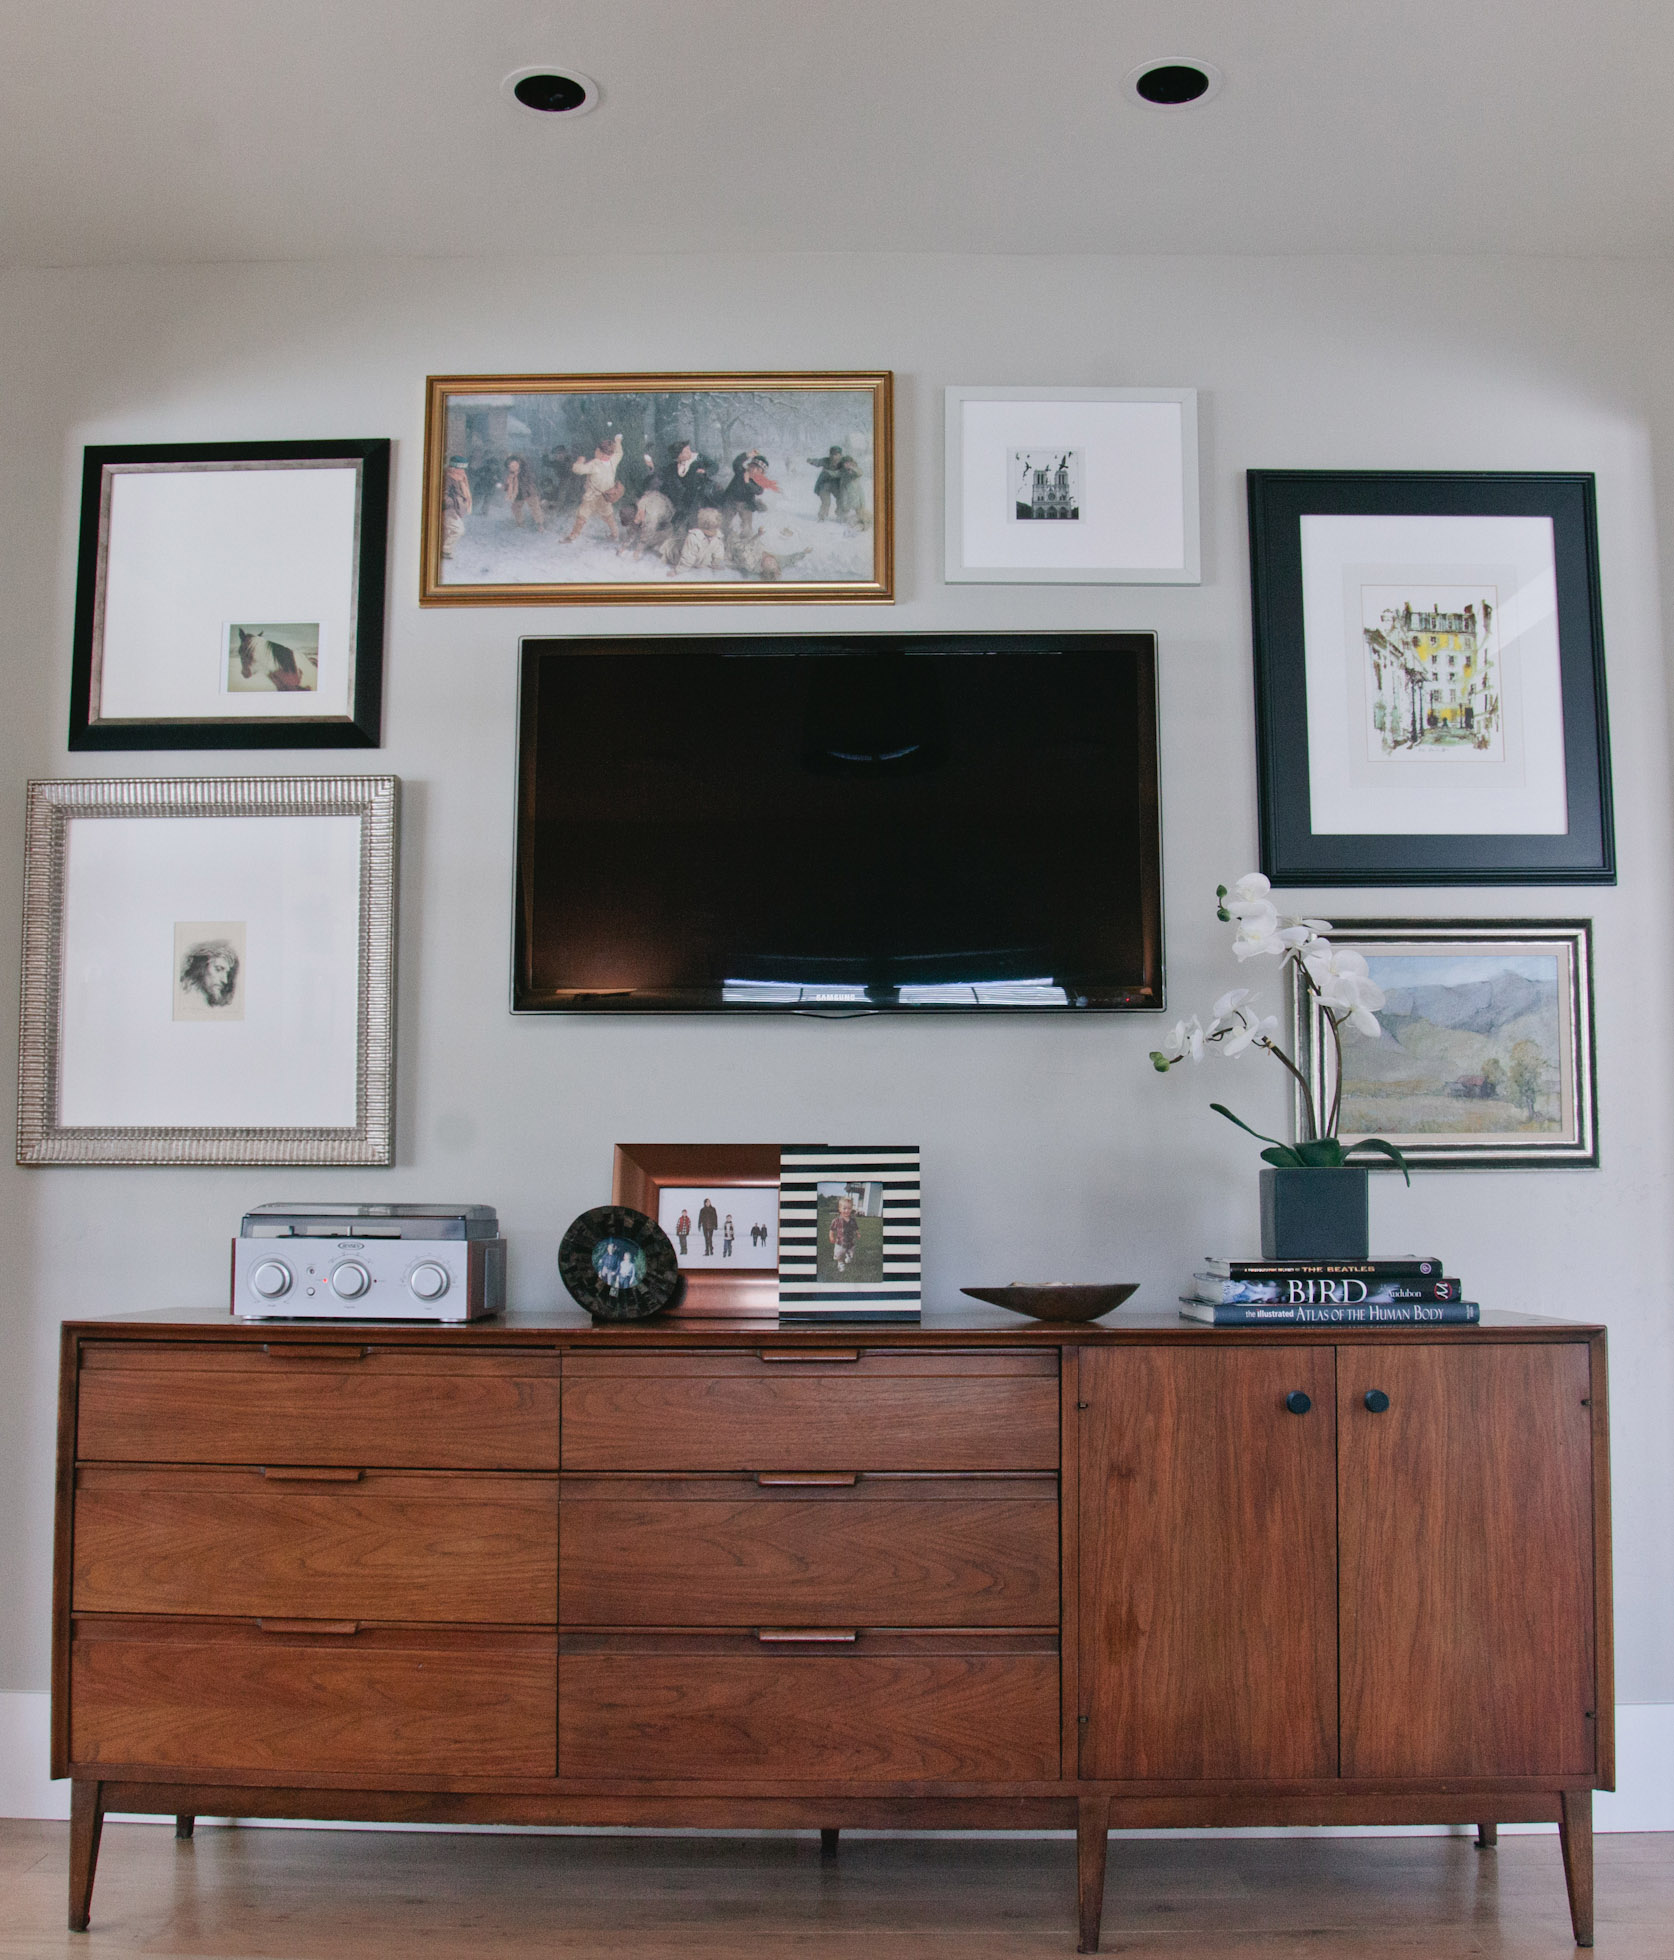 A mid-century modern credenza does double duty as a media console. The wall mounted TV blends in with the gallery of artwork which surrounds it.